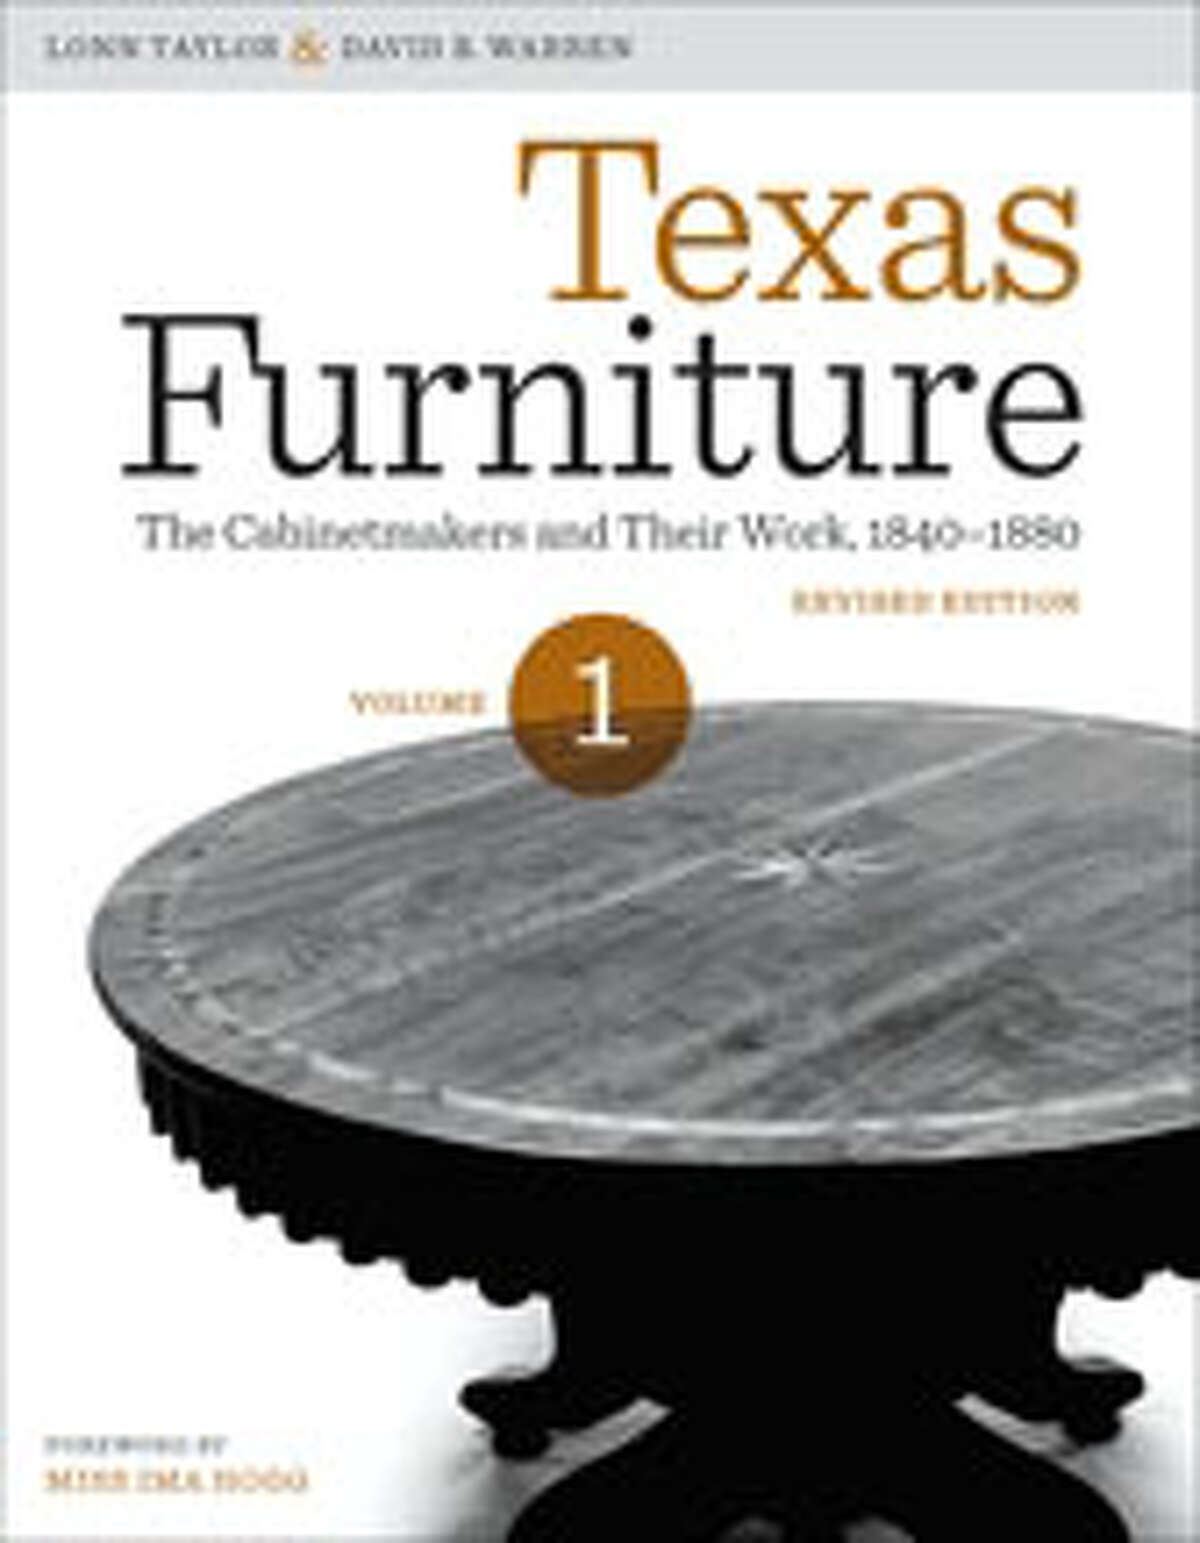 """Lonn Taylor and David B. Warren have updated and revised their definitive, Ima Hogg-inspired 1975 book on hand-crafted, historic Texas furniture in """"Texas Furniture: The Cabinetmakers and Their Work, 1840-1880."""""""